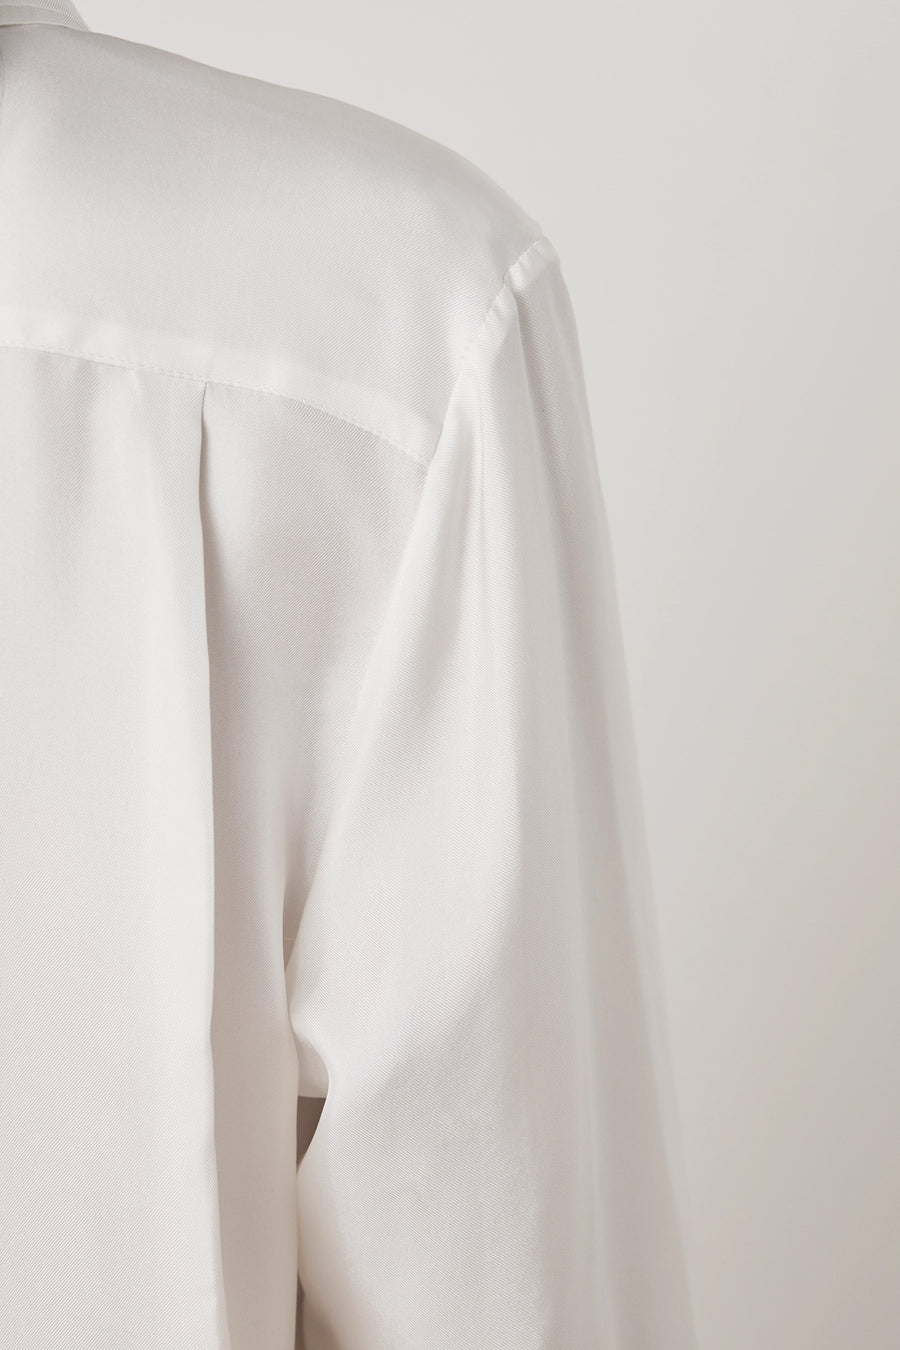 CLASSIC OFF WHITE - Marianne - Luxury Women's Silk Tailored Shirts and Scarves